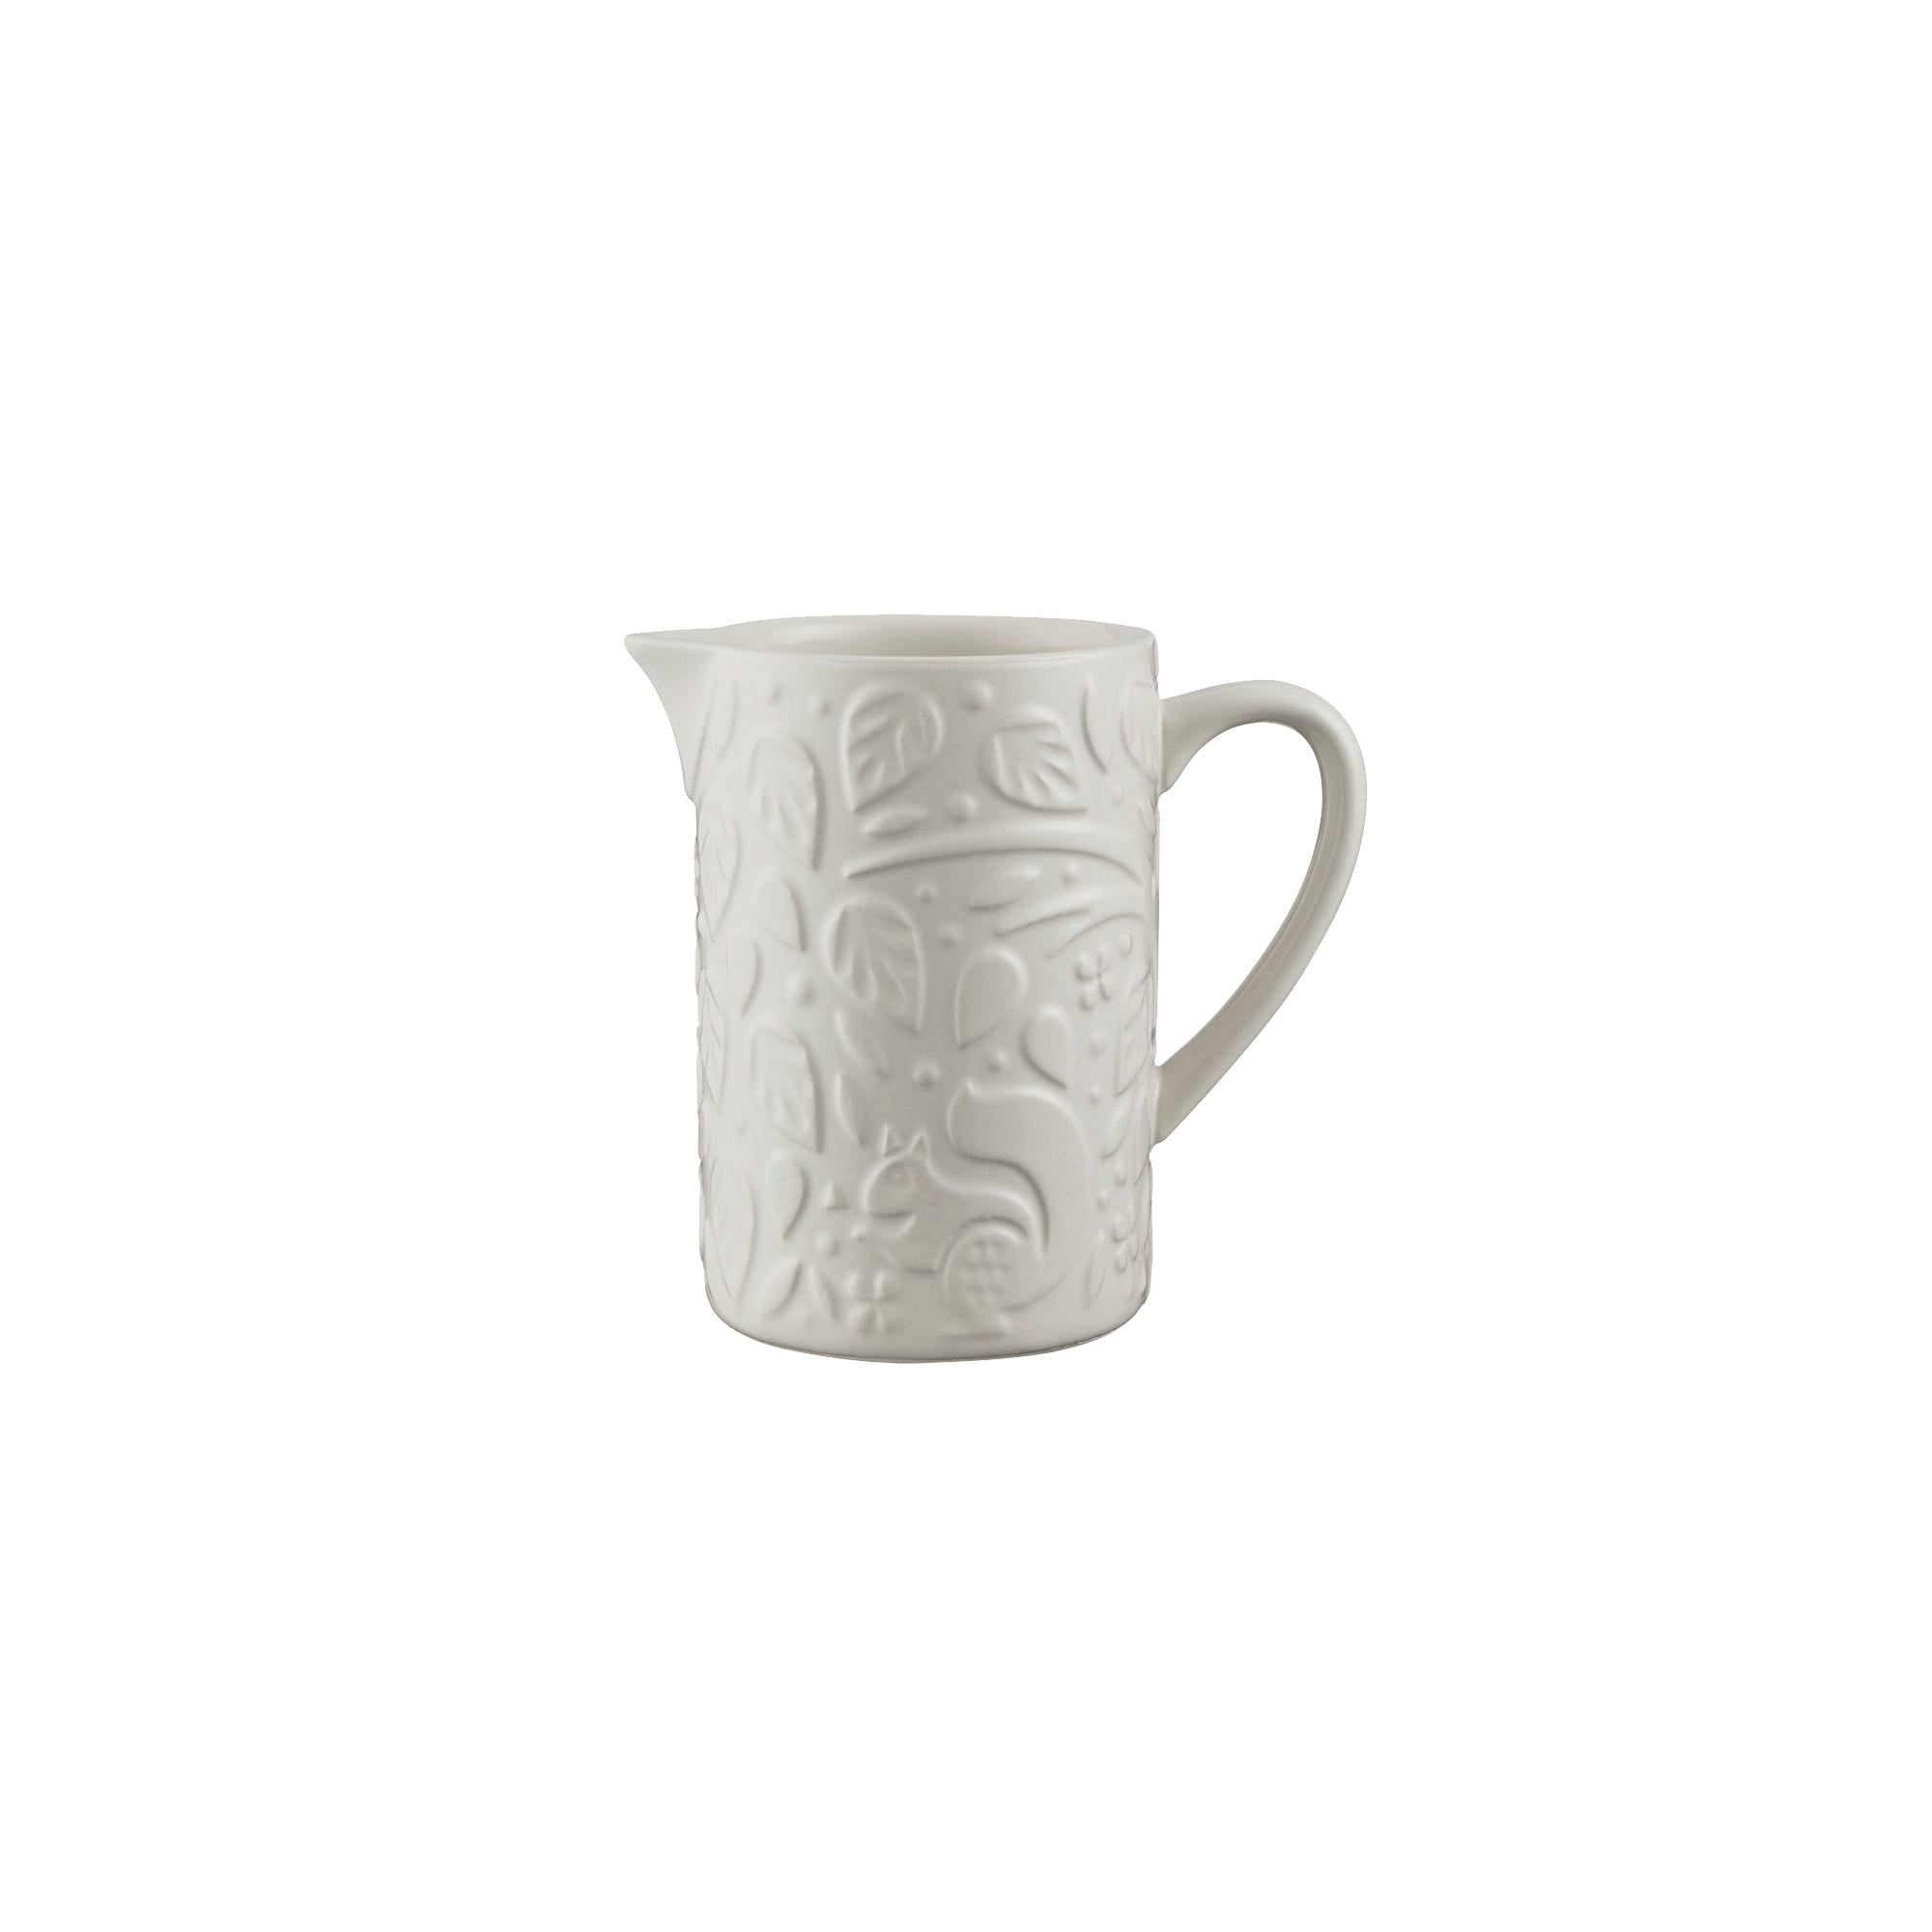 MASON CASH : In The Forest Creamer Jug